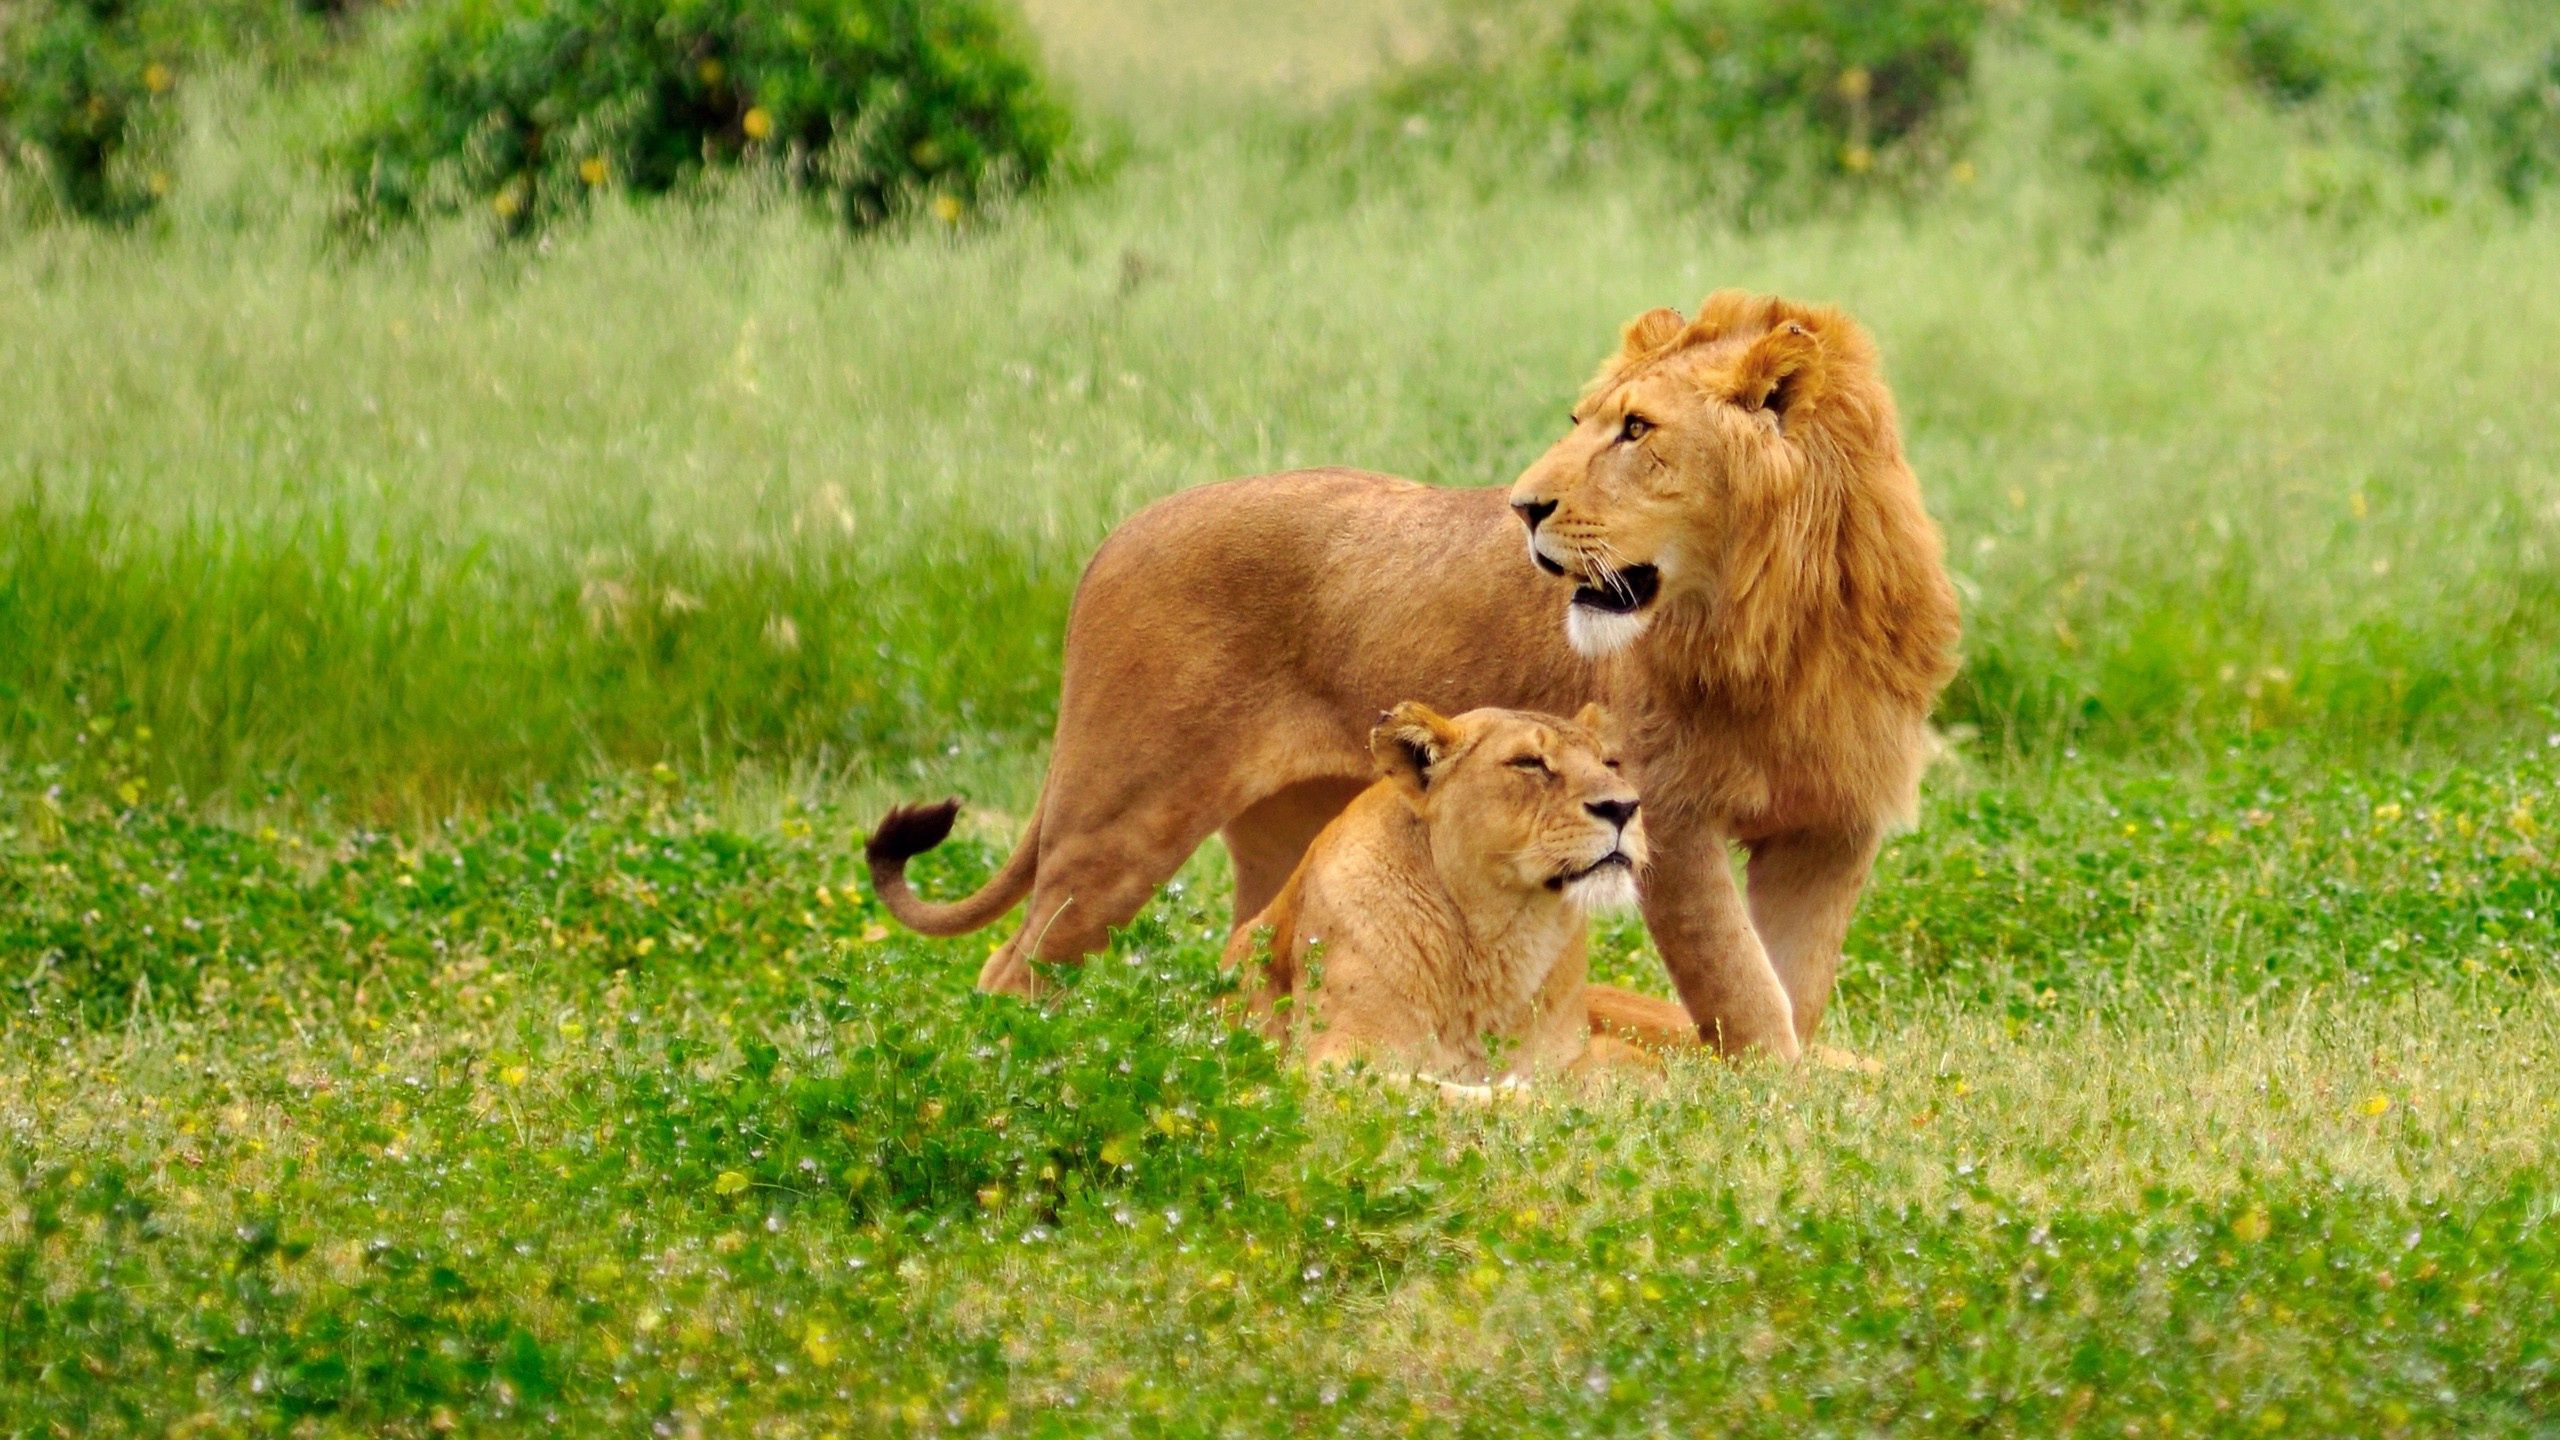 108433 download wallpaper Animals, Lion, Lioness, Field, Grass, Family, Care screensavers and pictures for free